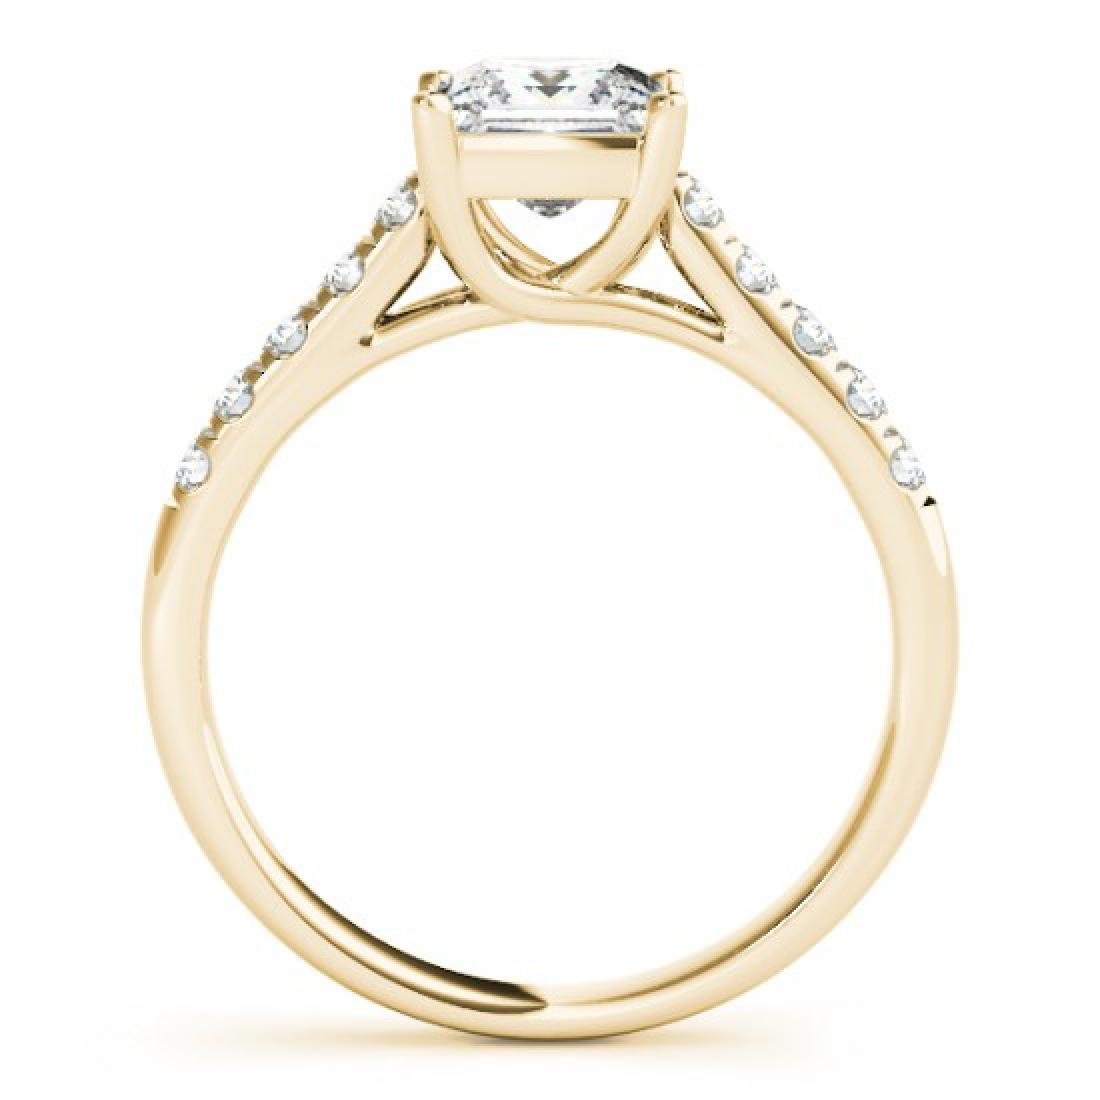 1.3 CTW Certified VS/SI Princess Diamond Ring 14K - 2